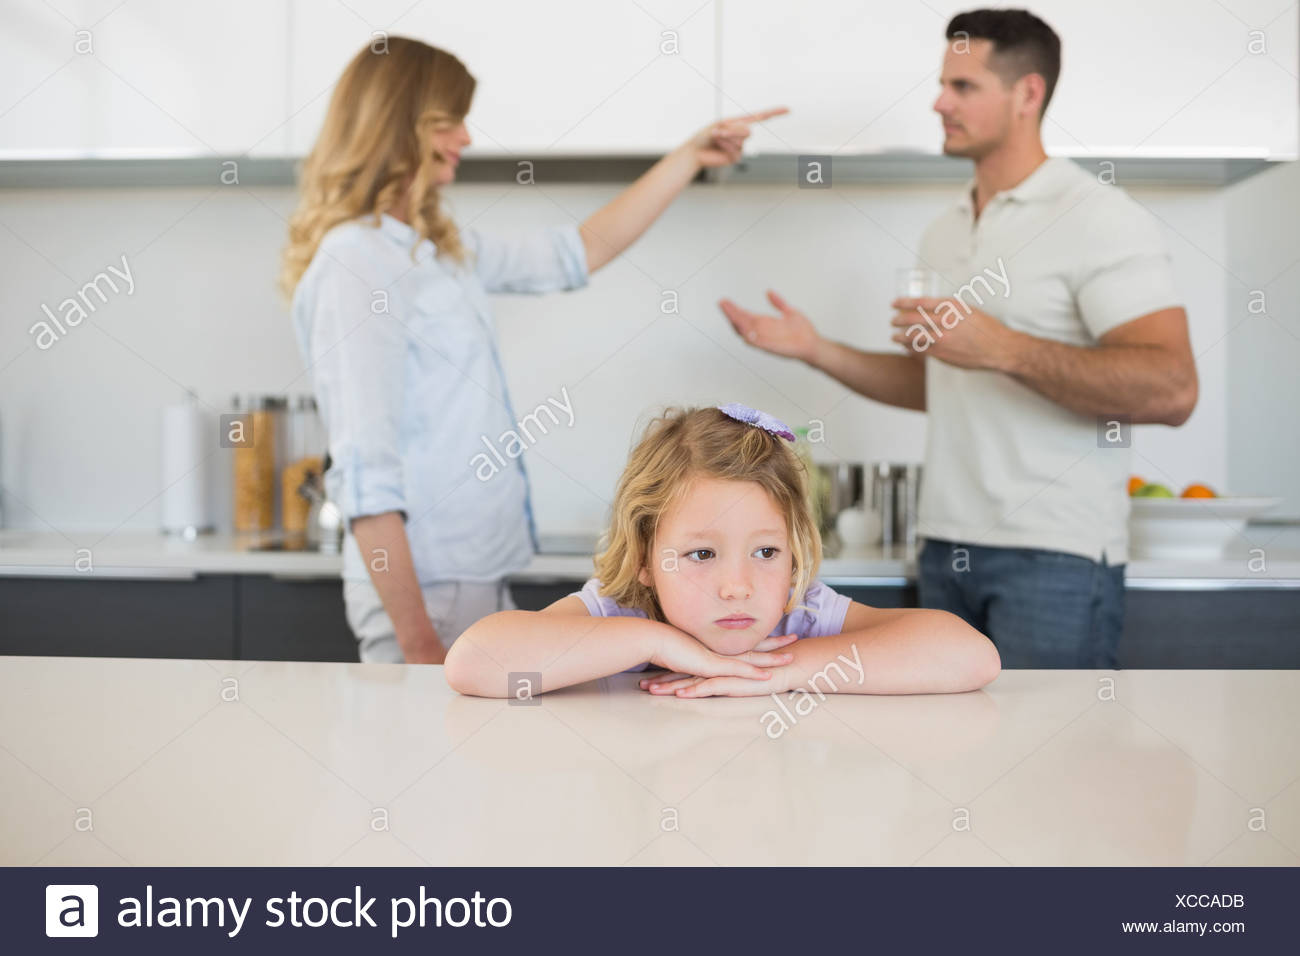 Sad girl against arguing parents - Stock Image